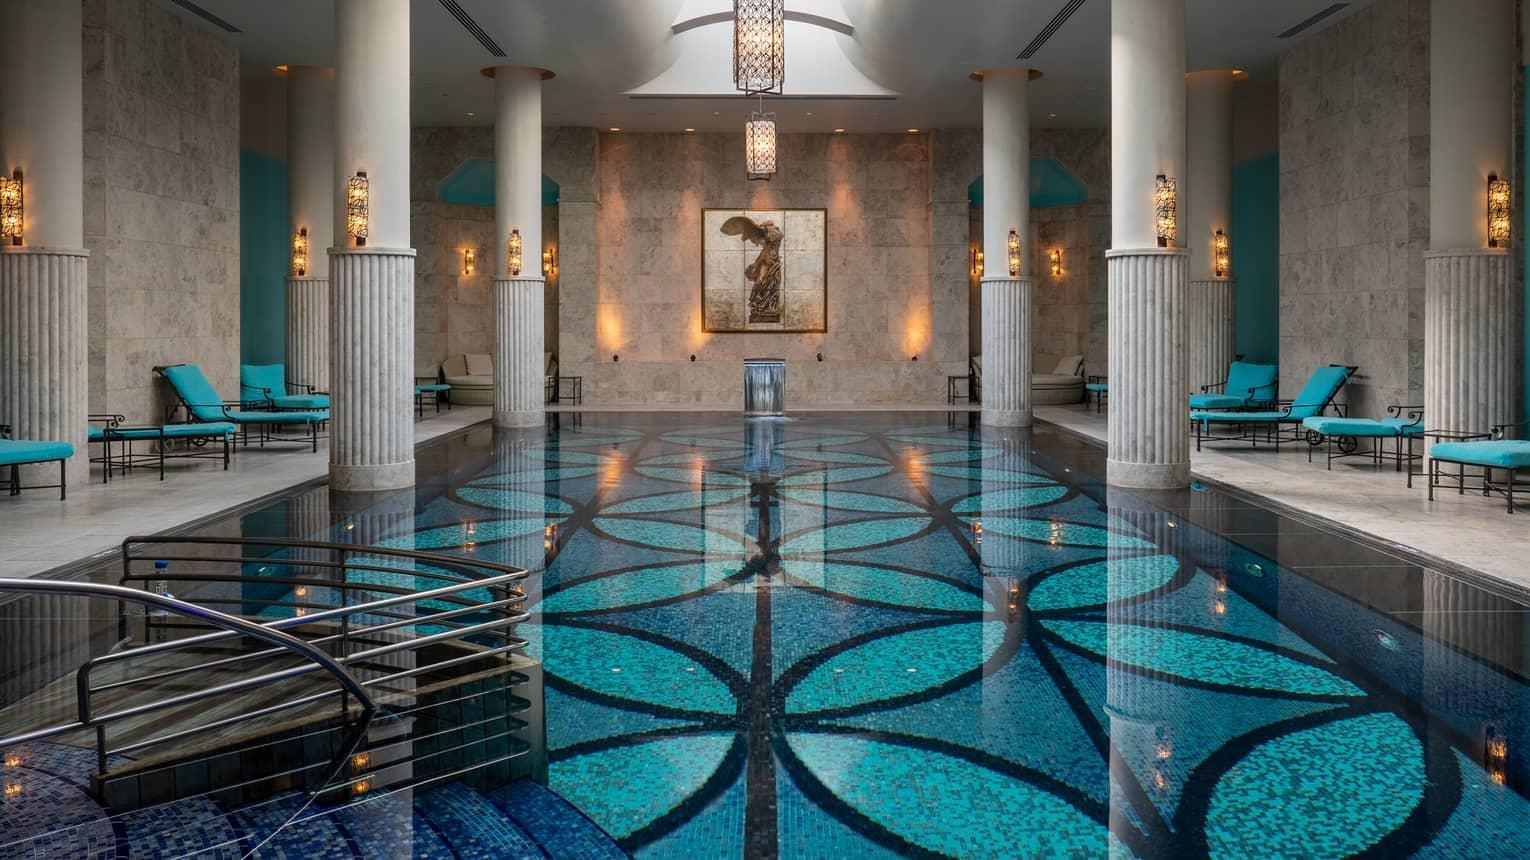 Indoor pool with blue-patterned floor, white up-lit columns and skylight